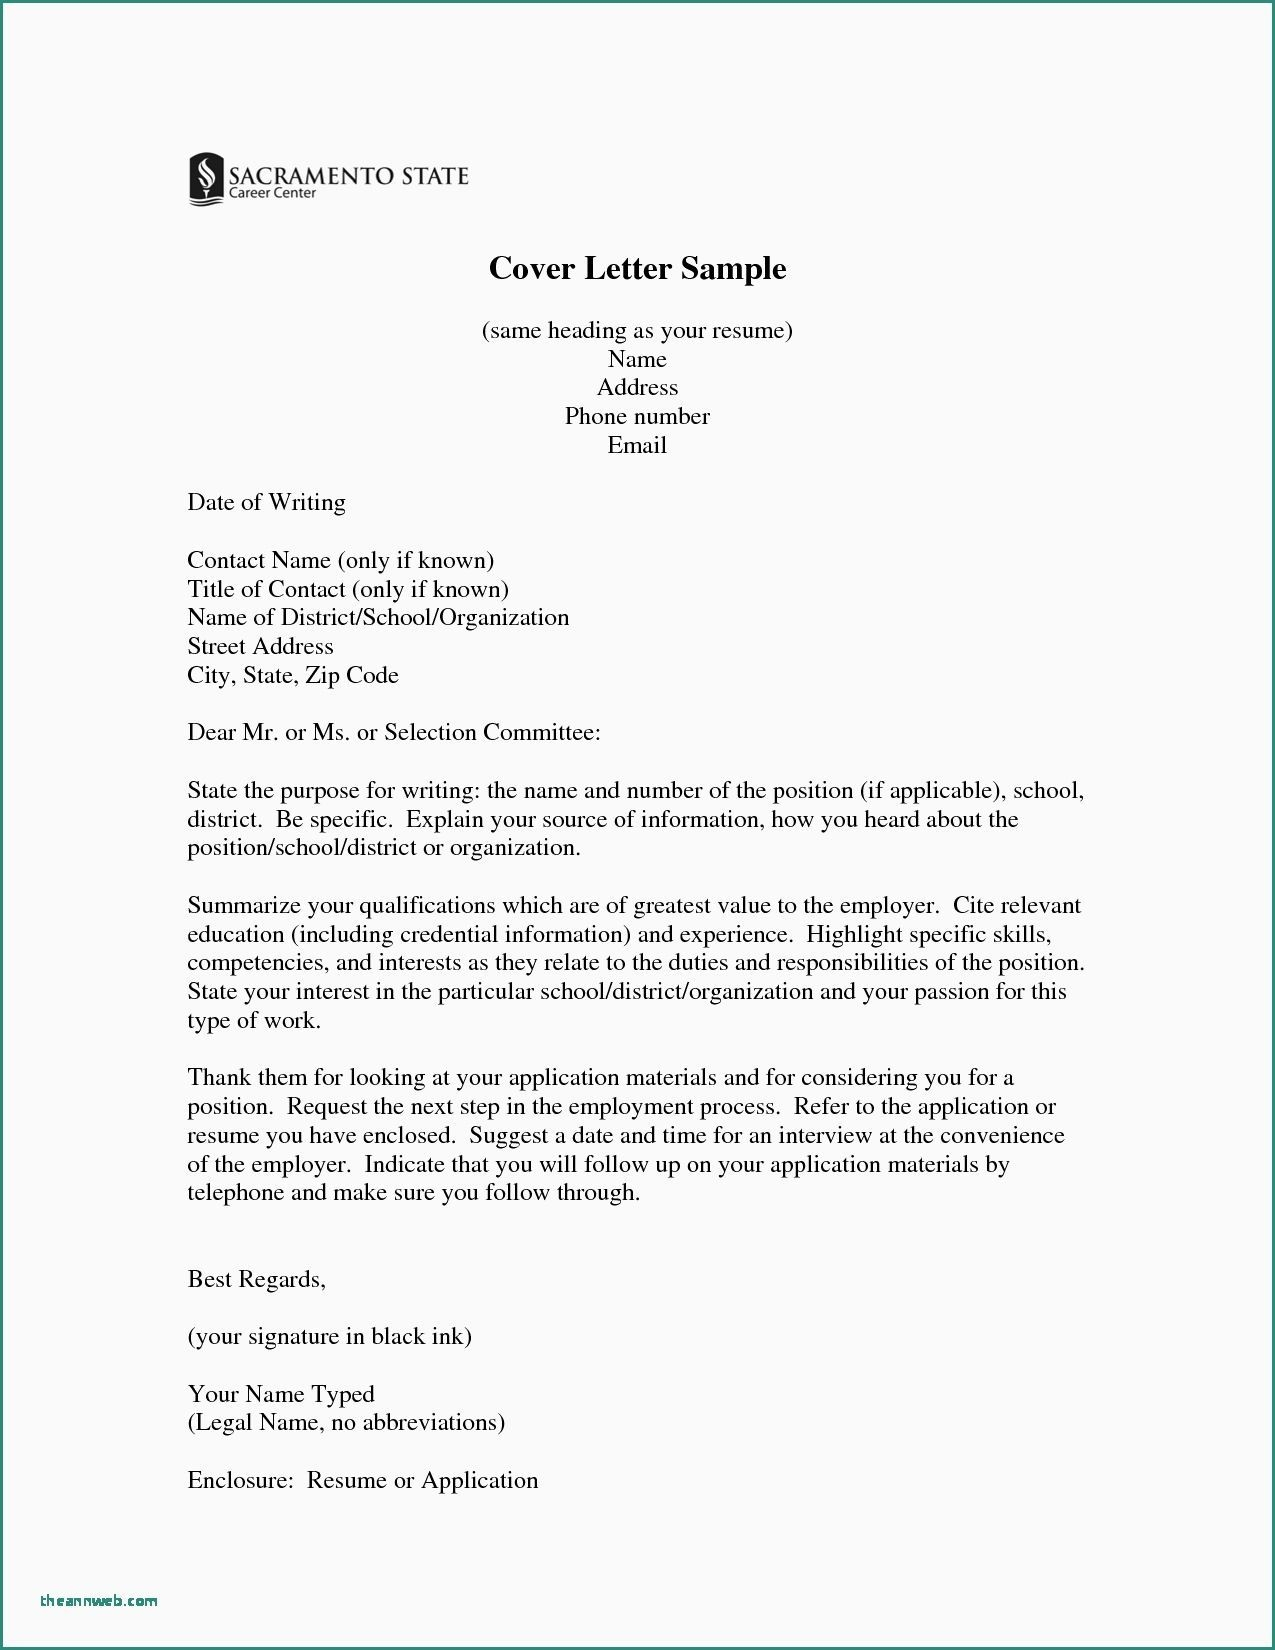 letter format in hindi resume title meaning in hindi resume letter meaning in hindi